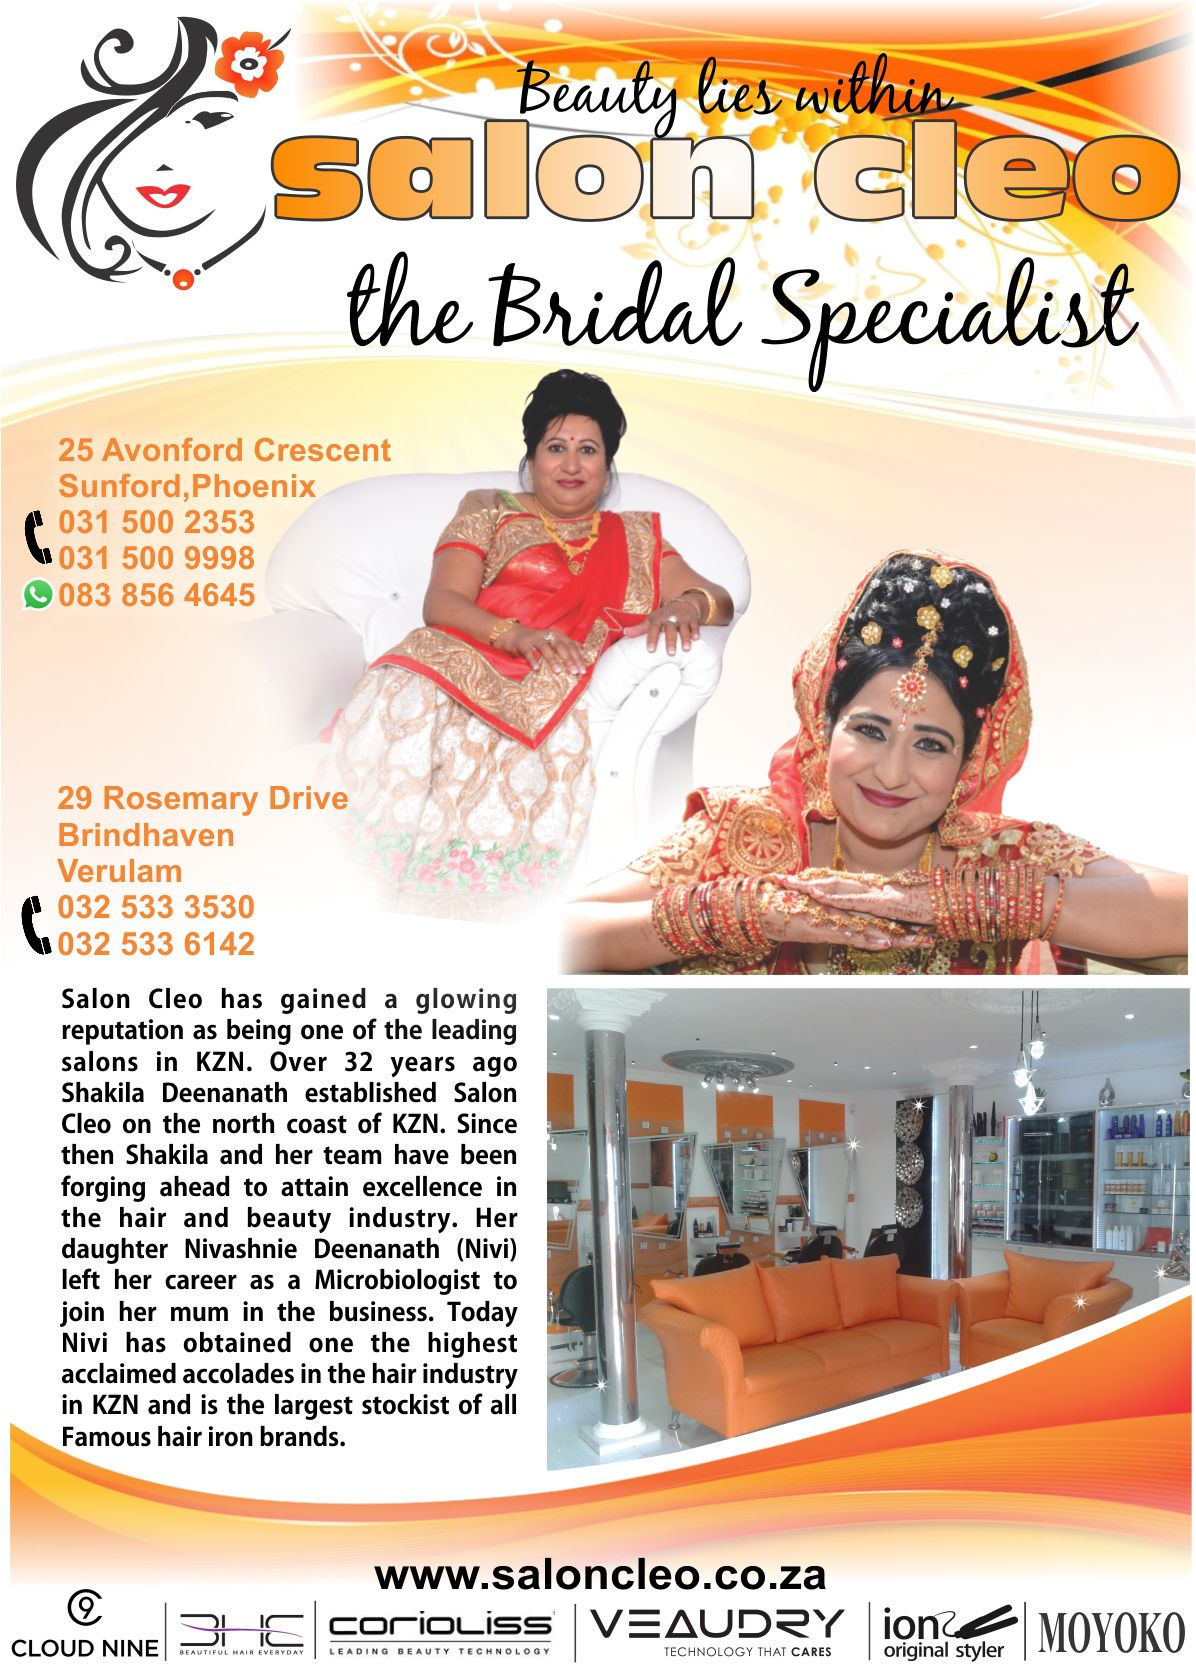 SALON CLEO THE BRIDAL SPECIALISTS 0315002353